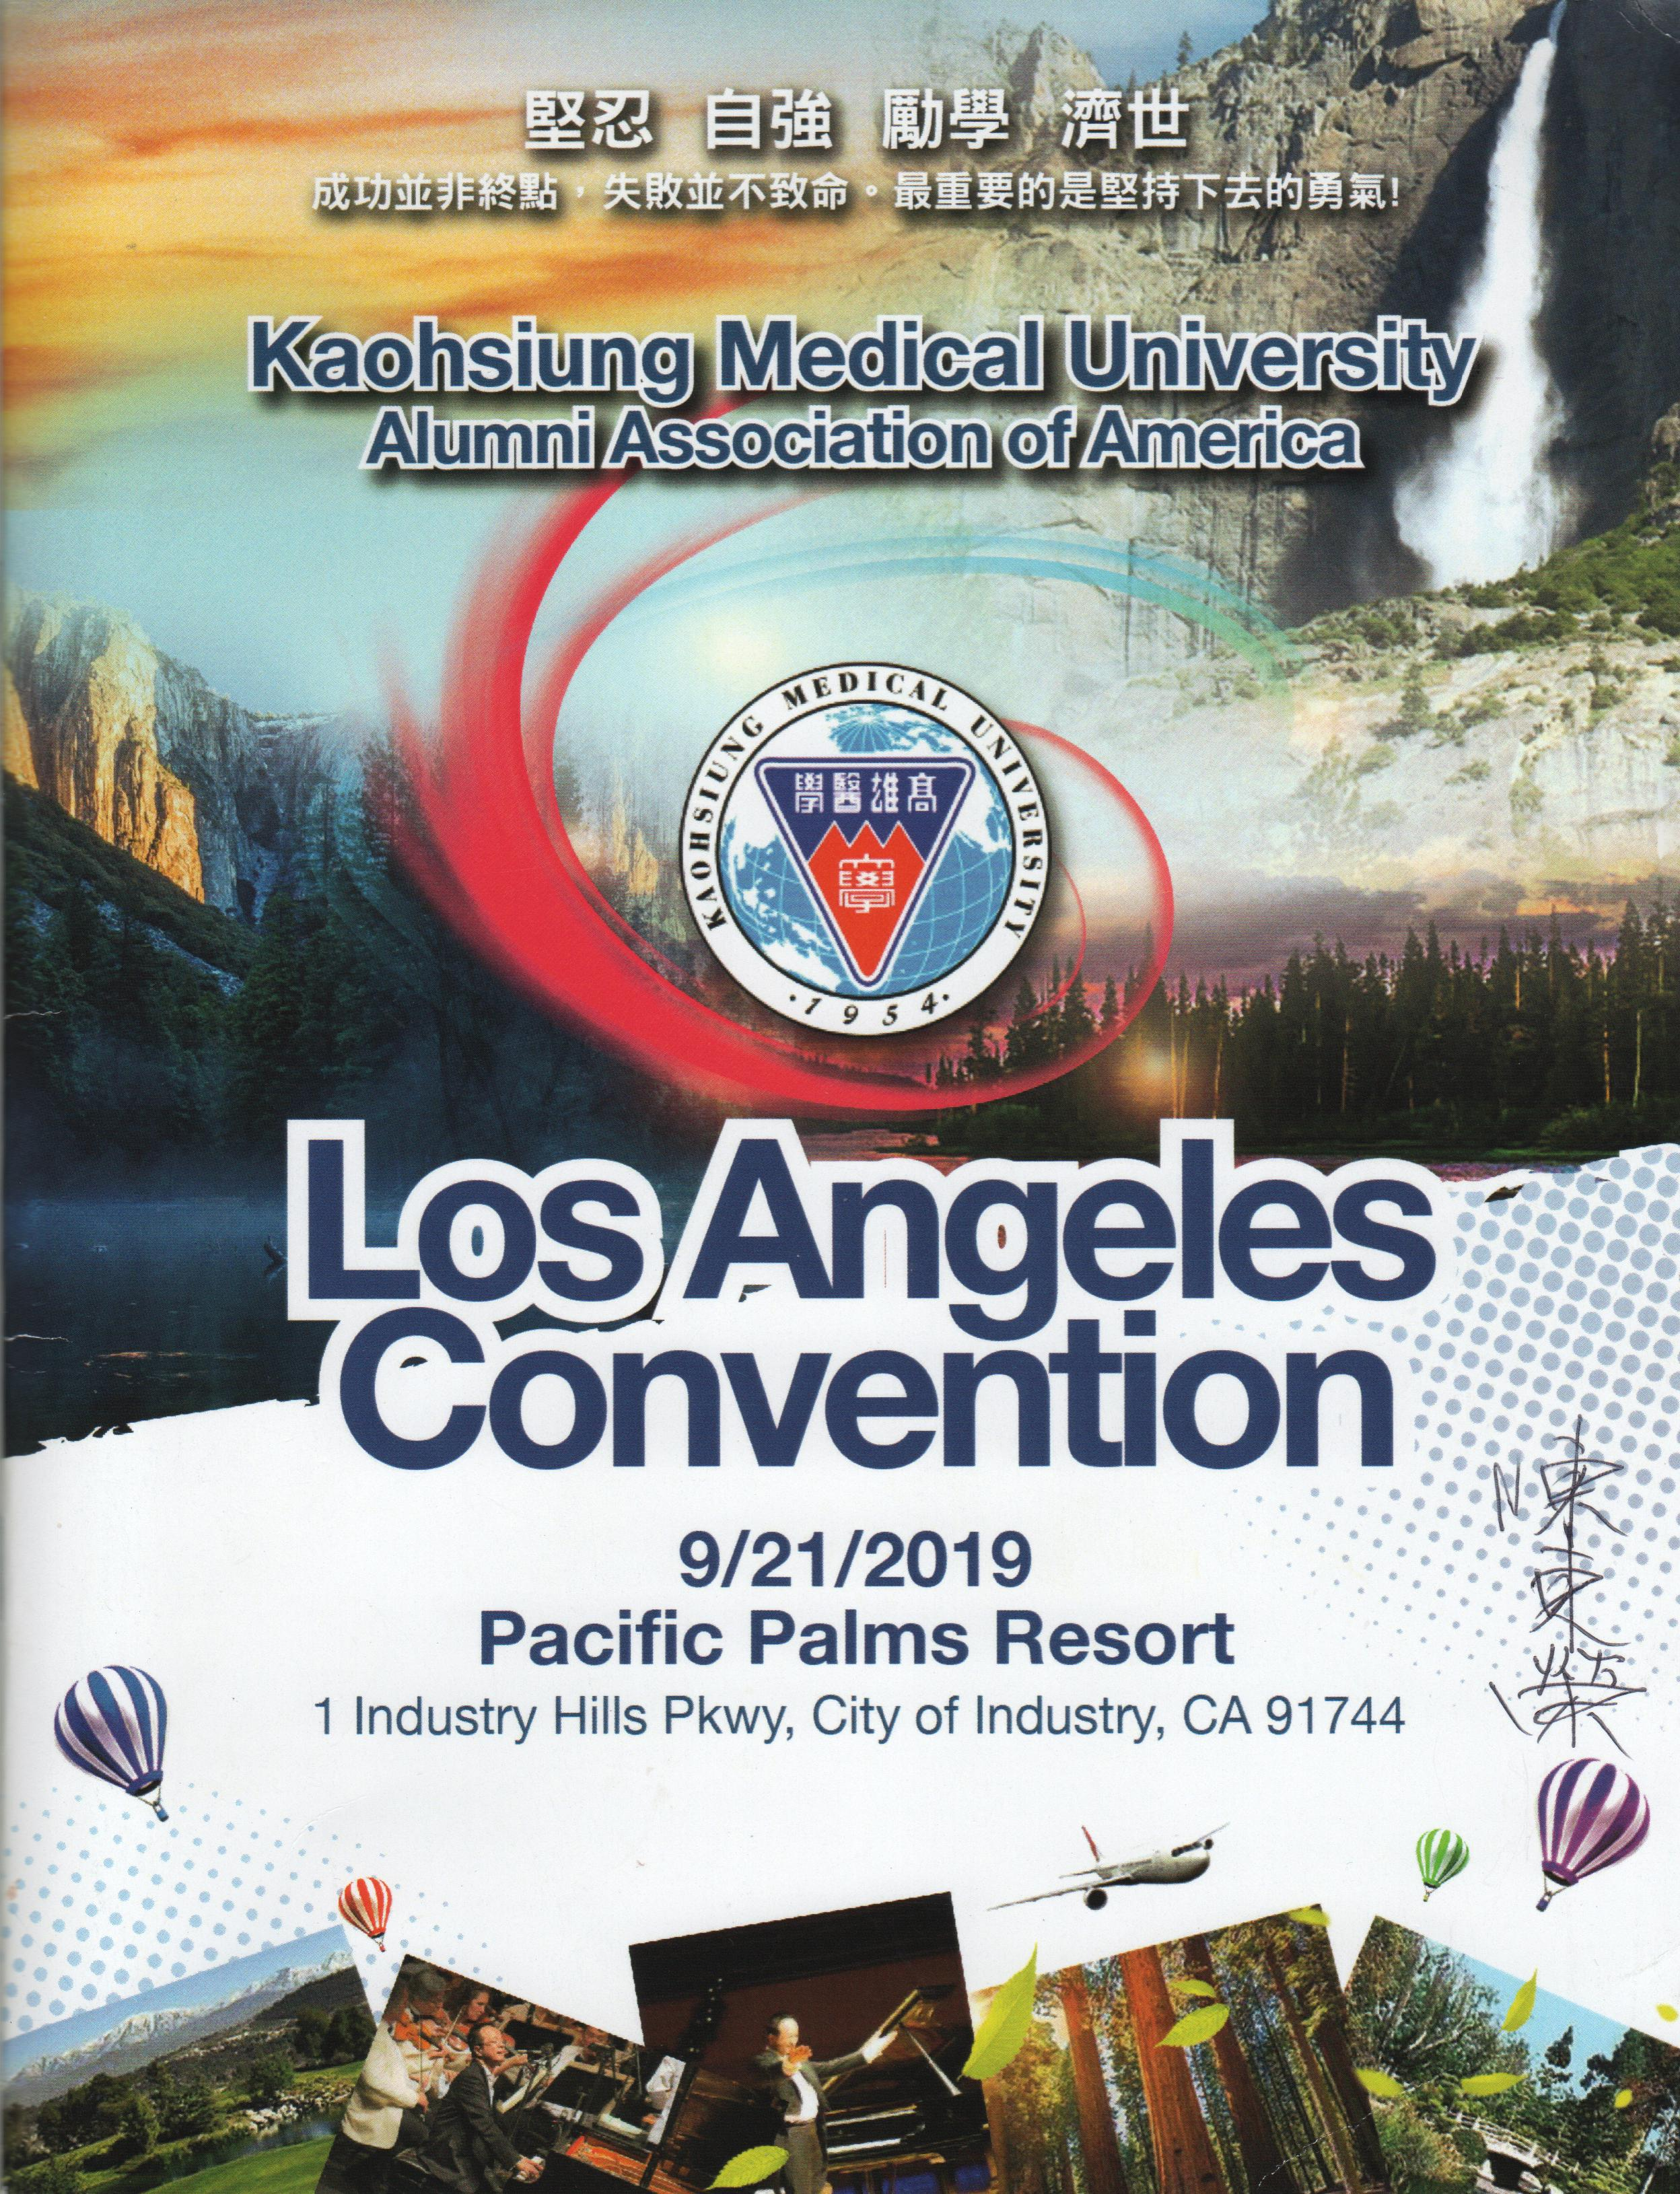 1332. Program Book of 2019 Kaohsiung Medical University America Alumni Association (KMUAAA) Los Angeles Convention / 高雄醫學大學北美校友會 /09/2019/Magazines/雜誌